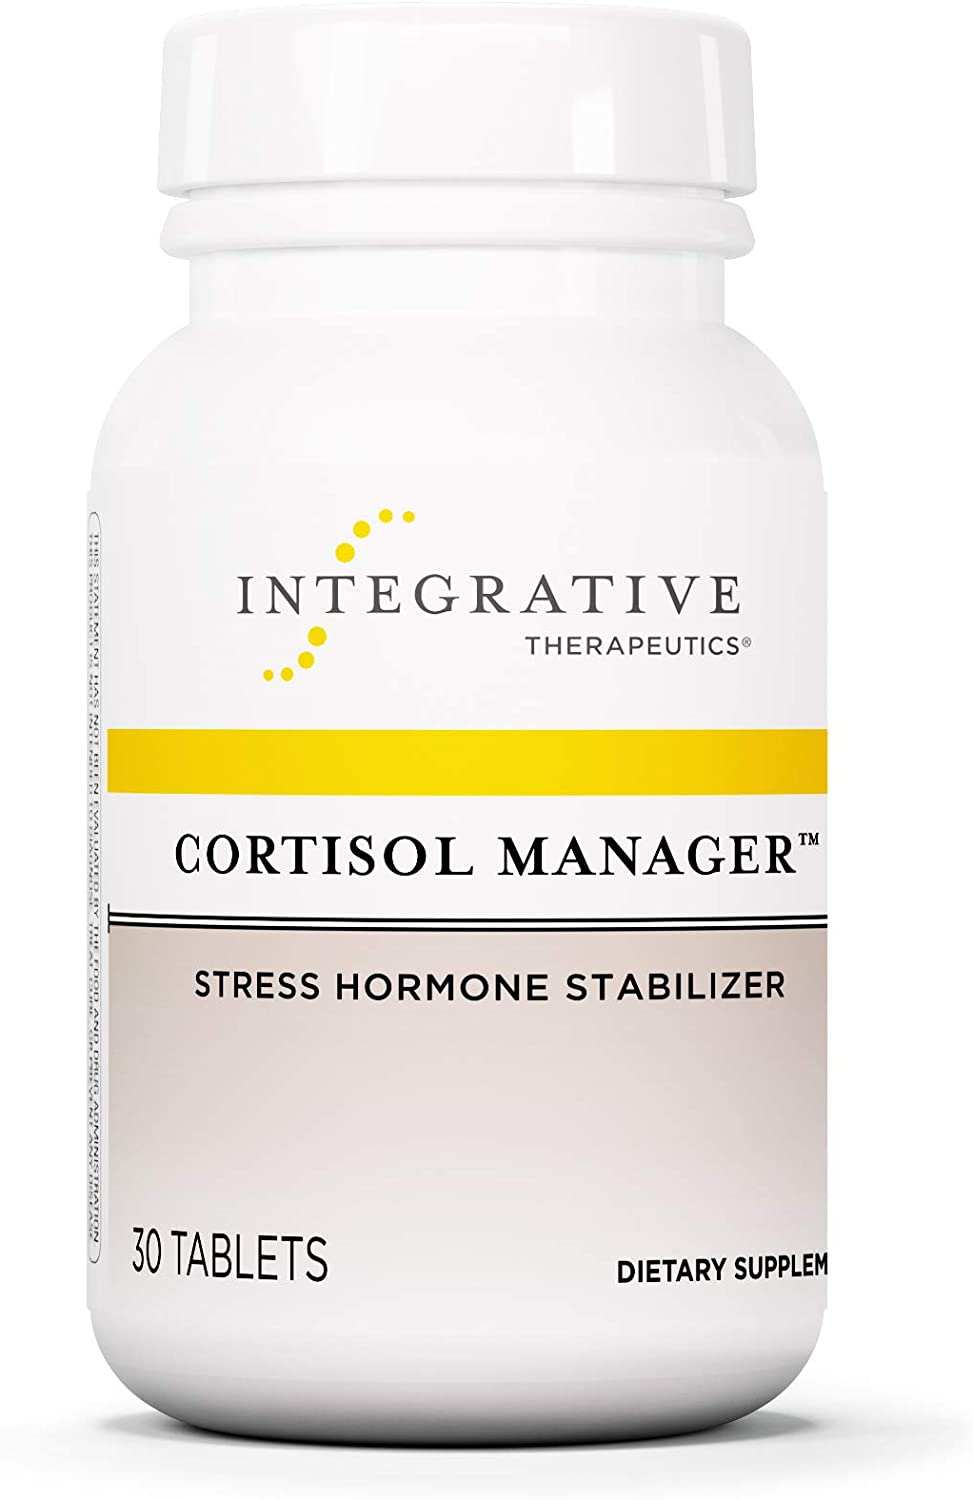 Cortisol Manager Tabs - Medical Grade Nutrients